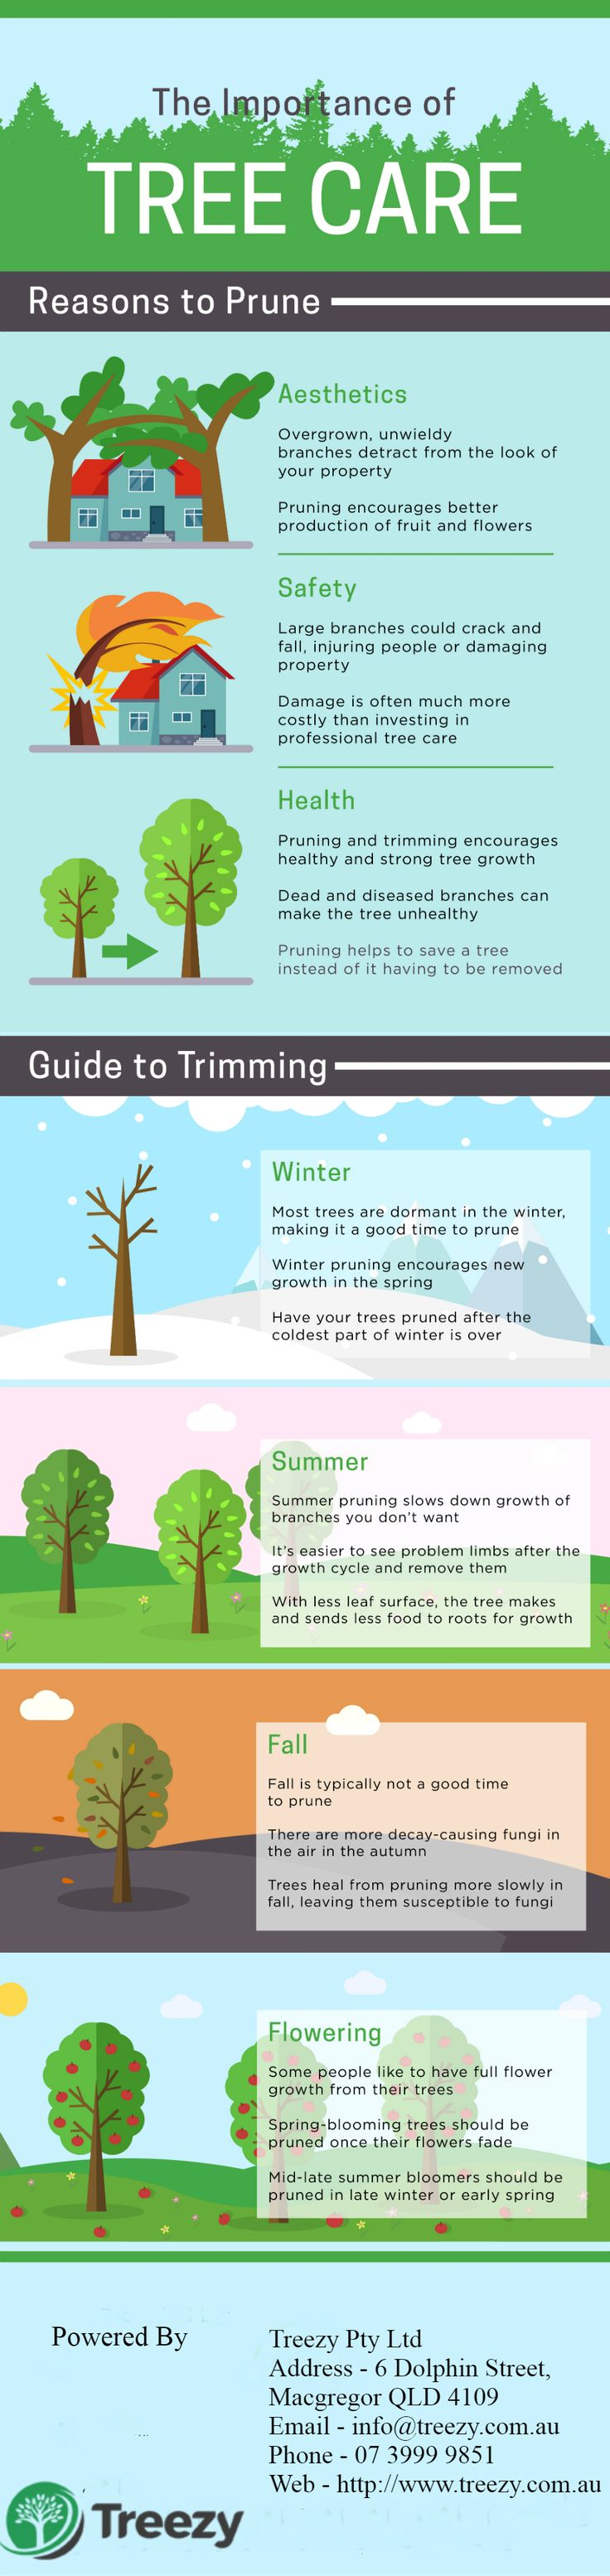 The importance of Tree care by treezy learn More reasons to prune and full guide of Trimming - If you are looking for professional Tree care services and Tree triming call now 07 3999 9851 or visit us http://www.treezy.com.au/  #treecare #reasonstoprune #treeprunning #treetrimming #treetrimmingbrisbanesouthside #treeprunningbrisbanesouthside